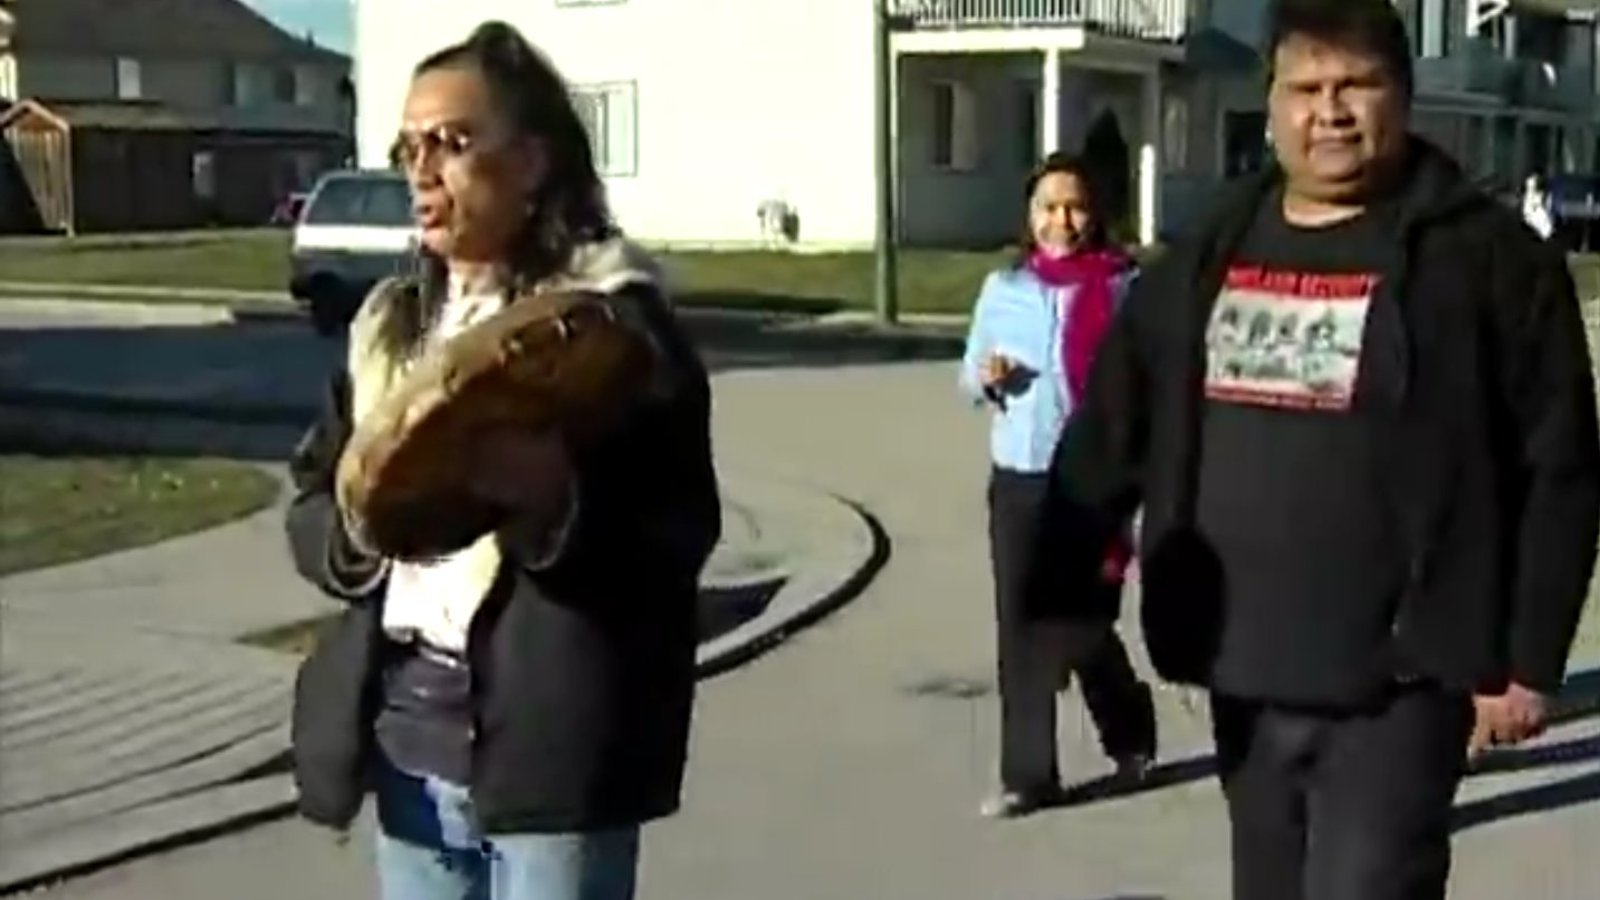 A Life Worth Living - Suicide Prevention in Native American and First Nations Communities